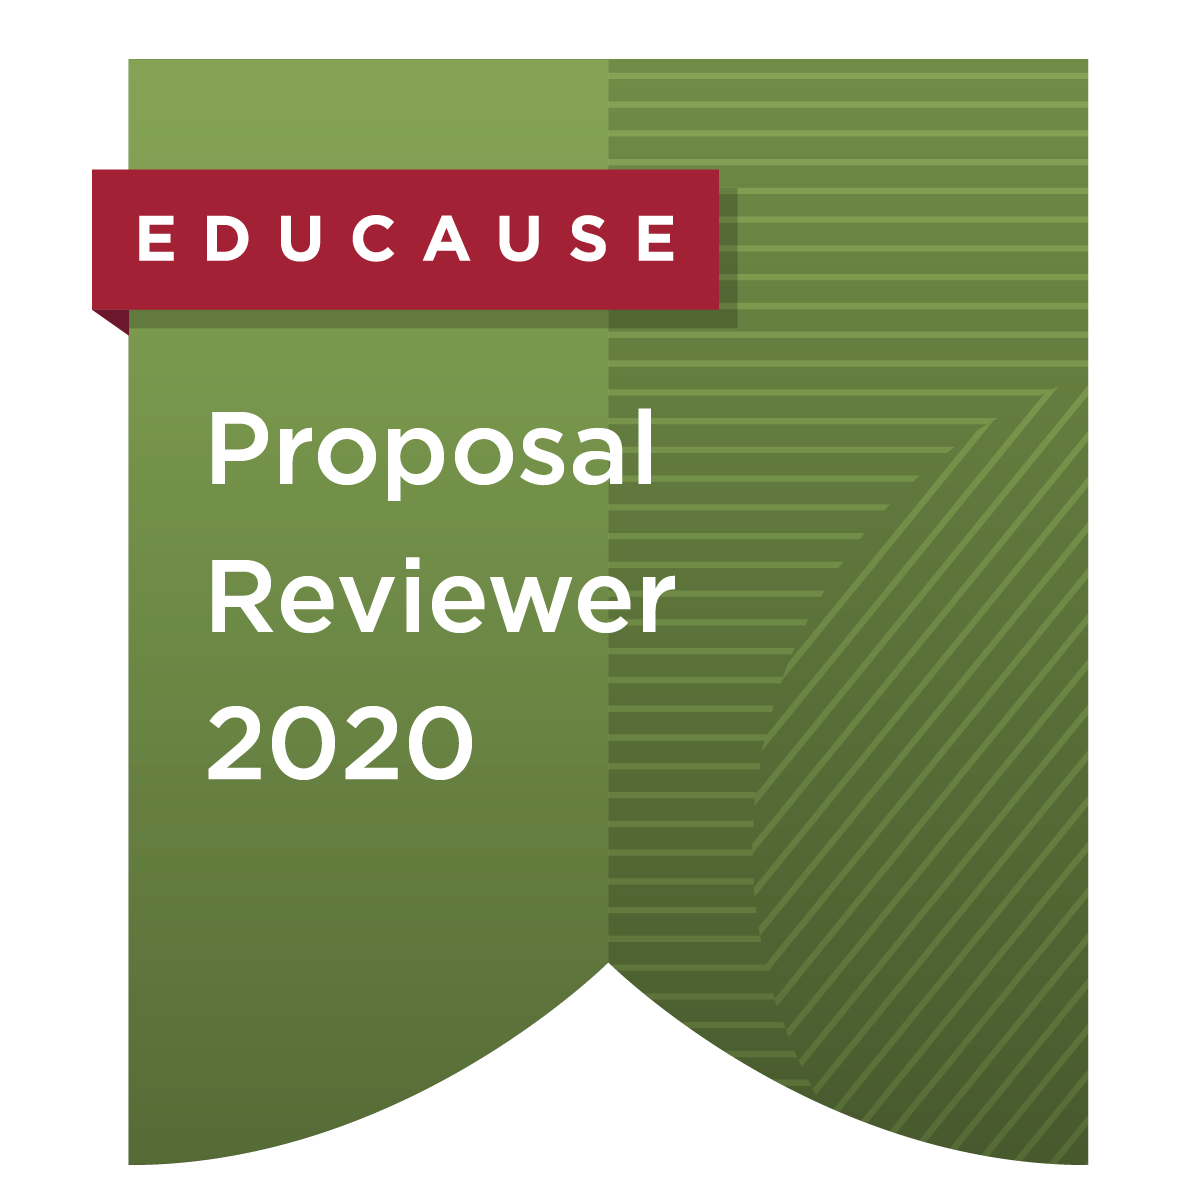 Proposal Reviewer 2020